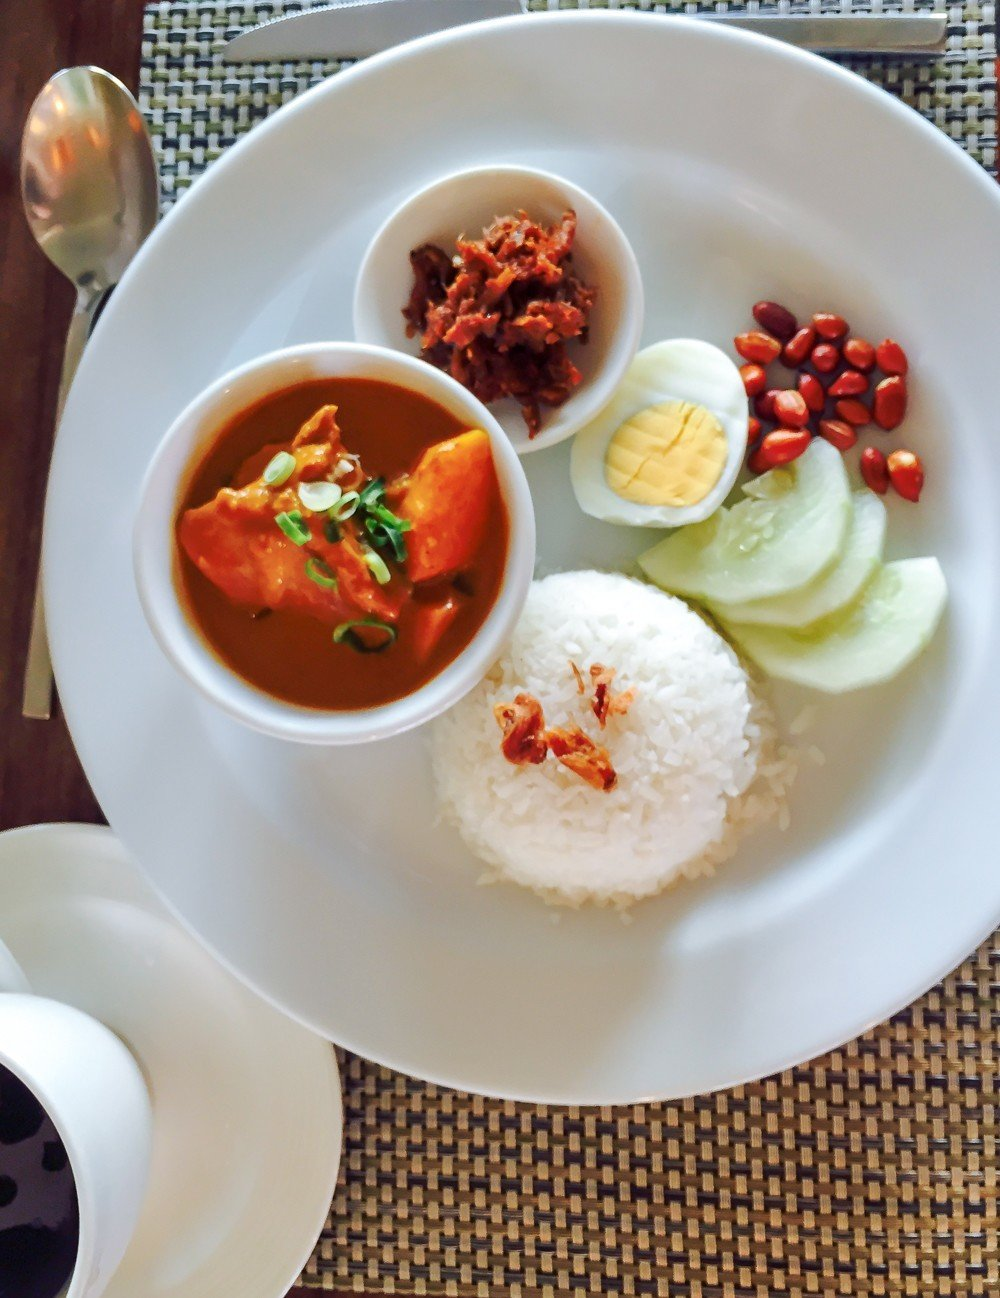 Nasi lemak for breakfast at Shangri-la's Tanjung Aru Resort and Spa in Kota Kinabalu, Malaysia